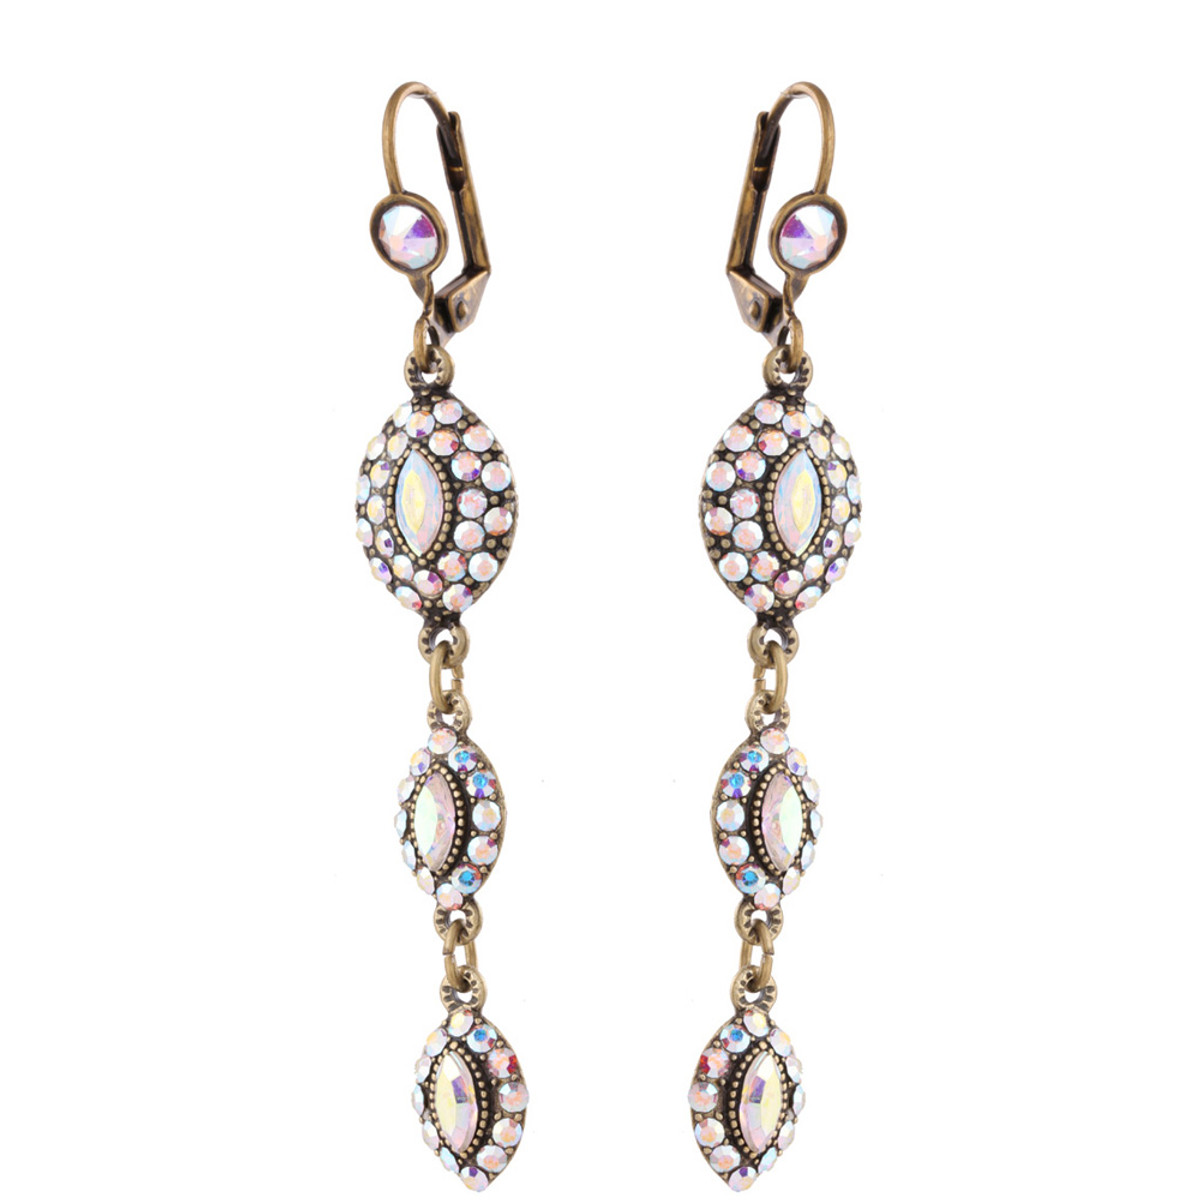 Michal Negrin Leah Lovely Swarovski Crystals Earrings